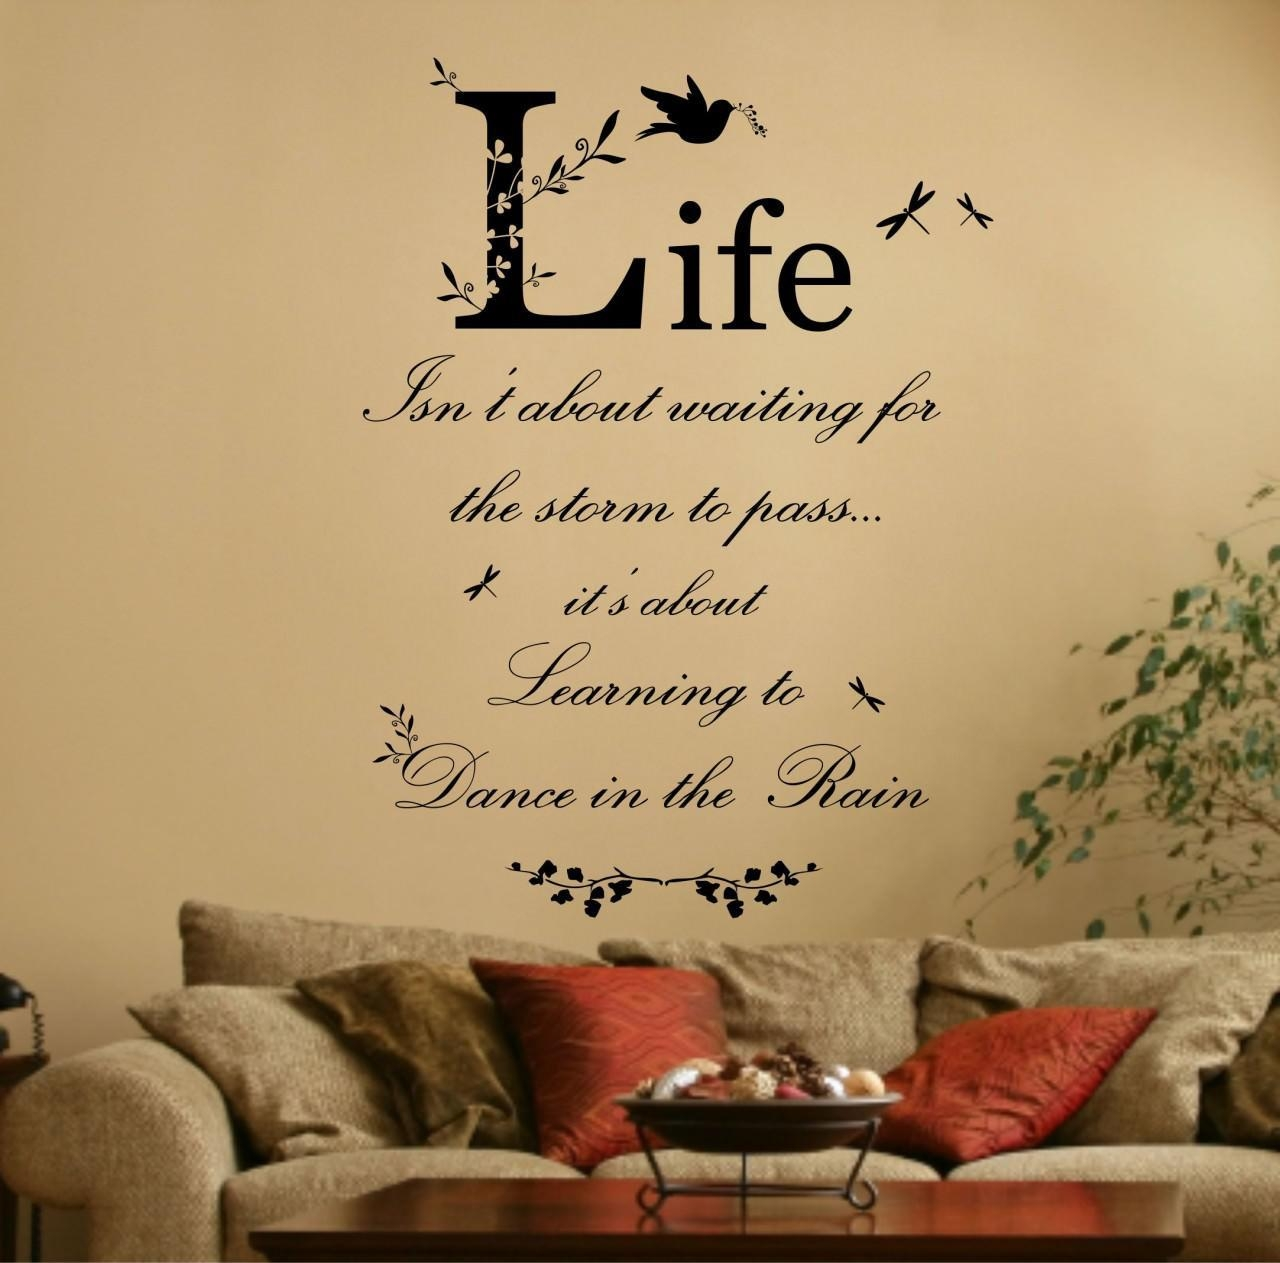 Wall Art Design Ideas: Simple Decals Wall Art With Sayings For Family Sayings Wall Art (View 6 of 20)